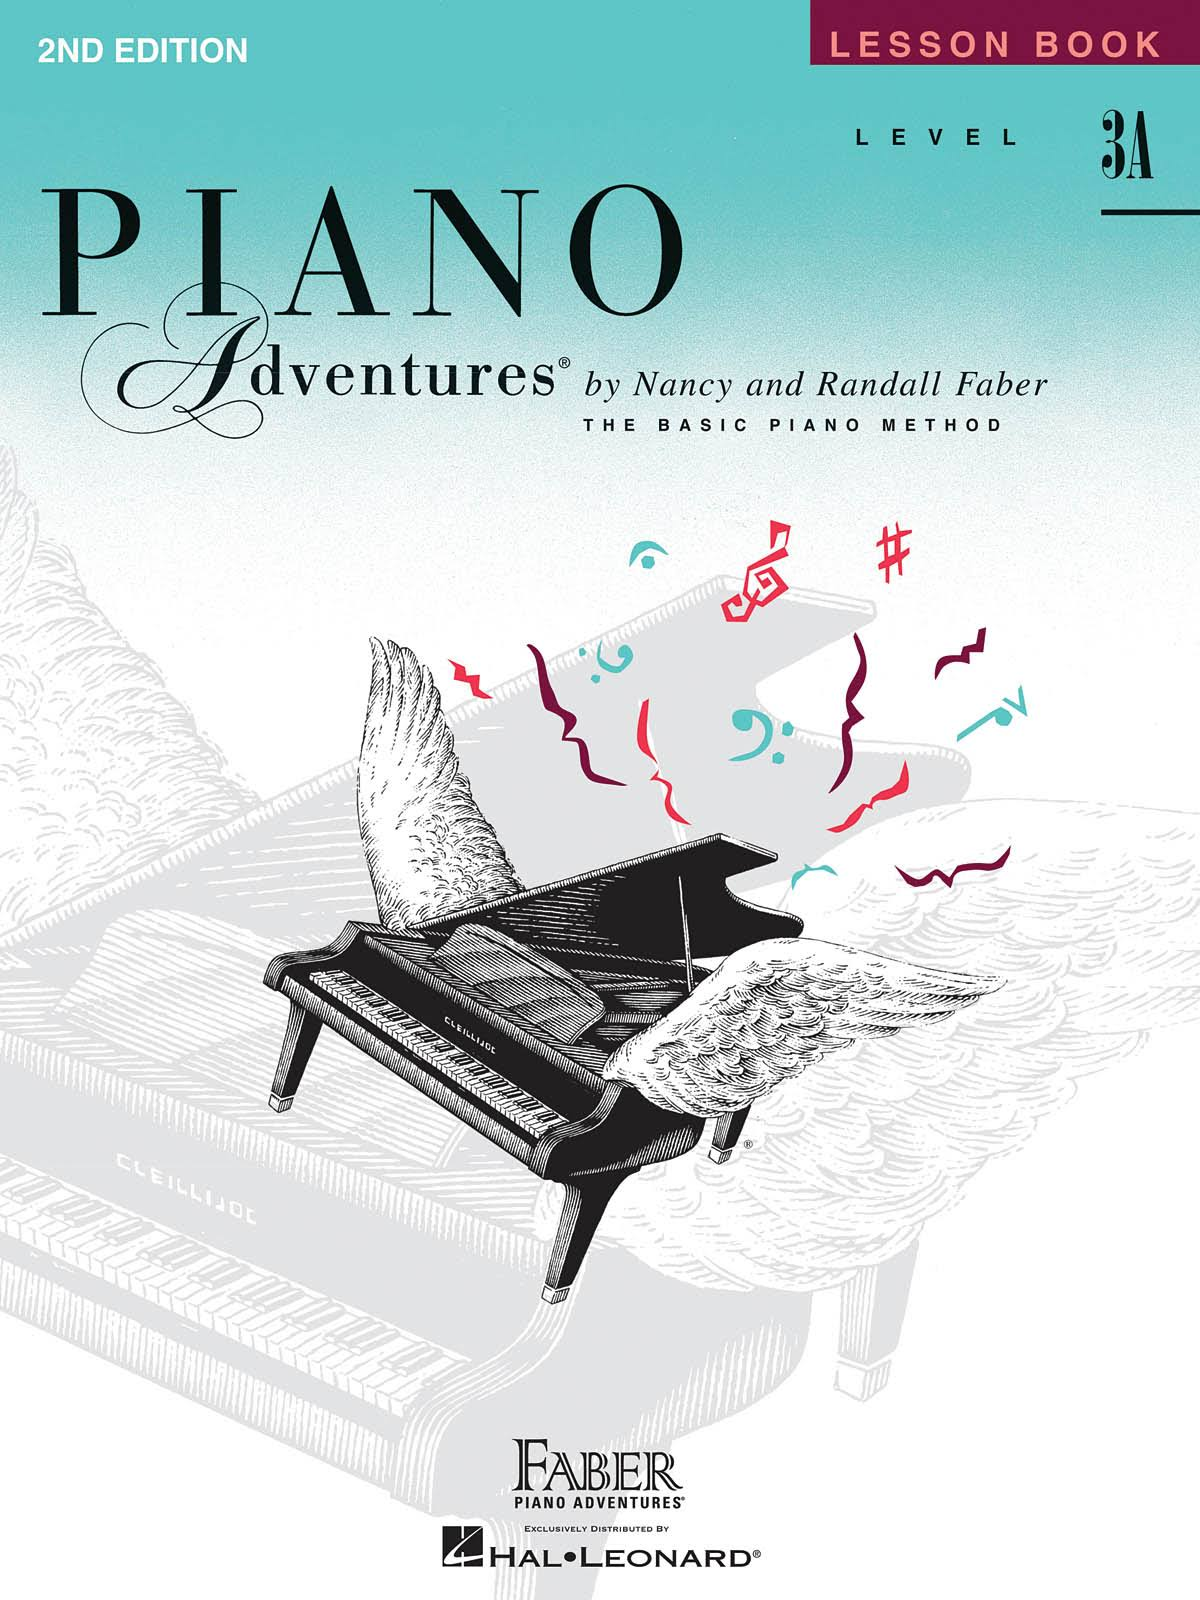 Piano Adventures Lesson Book: Level 3A - Nancy & Randall Faber